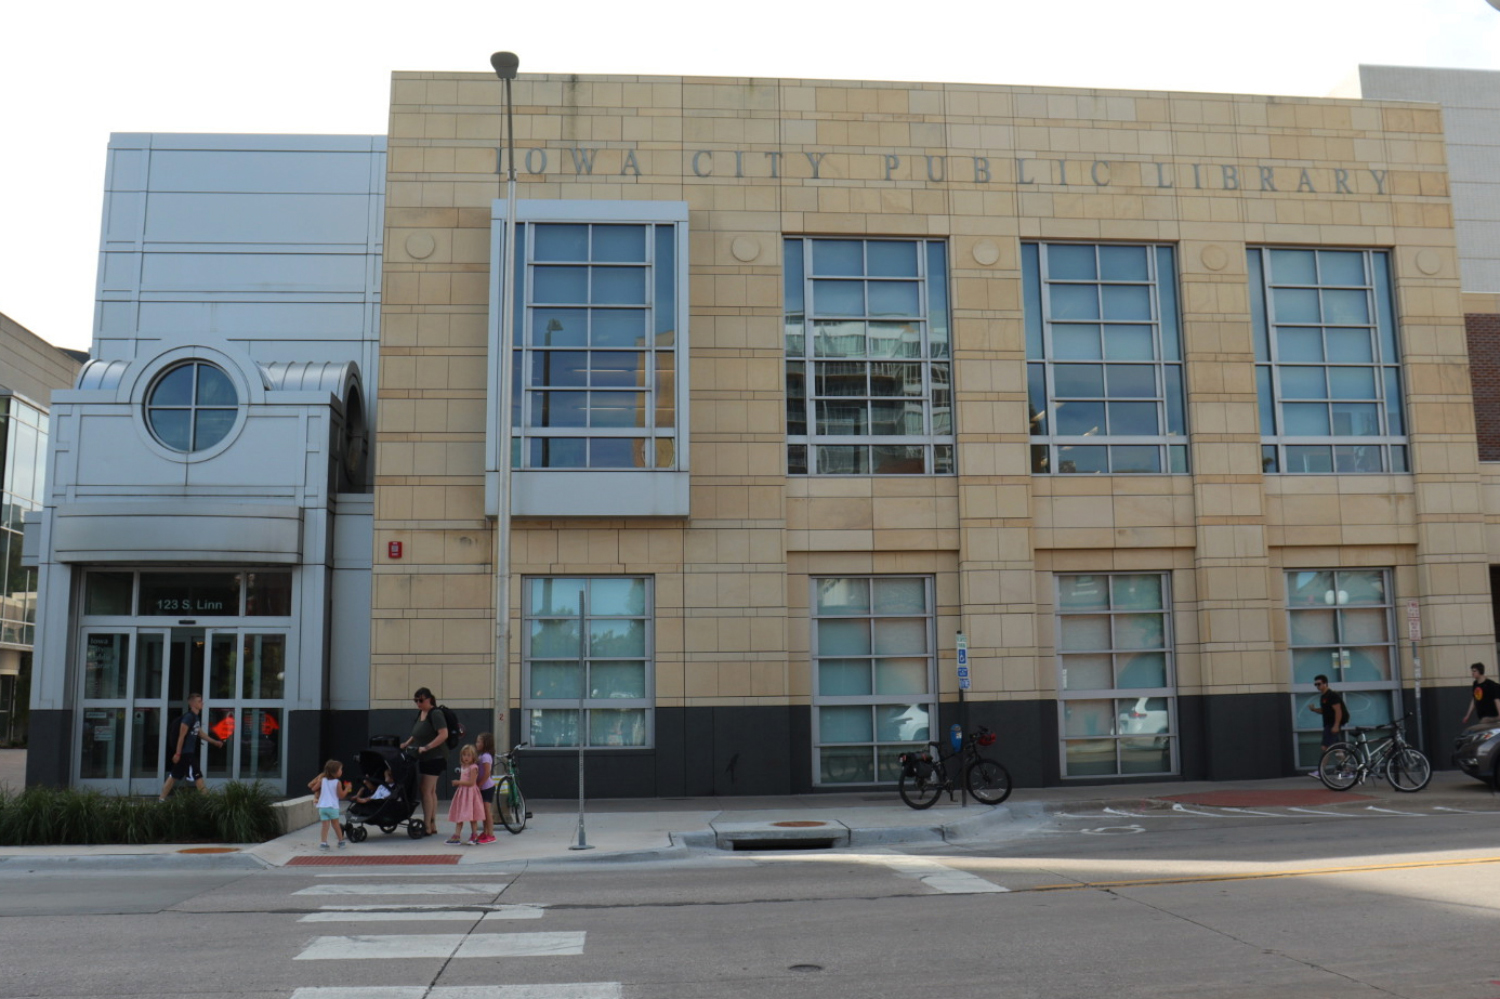 The Iowa City Public Library is seen on Monday, September 16, 2019.